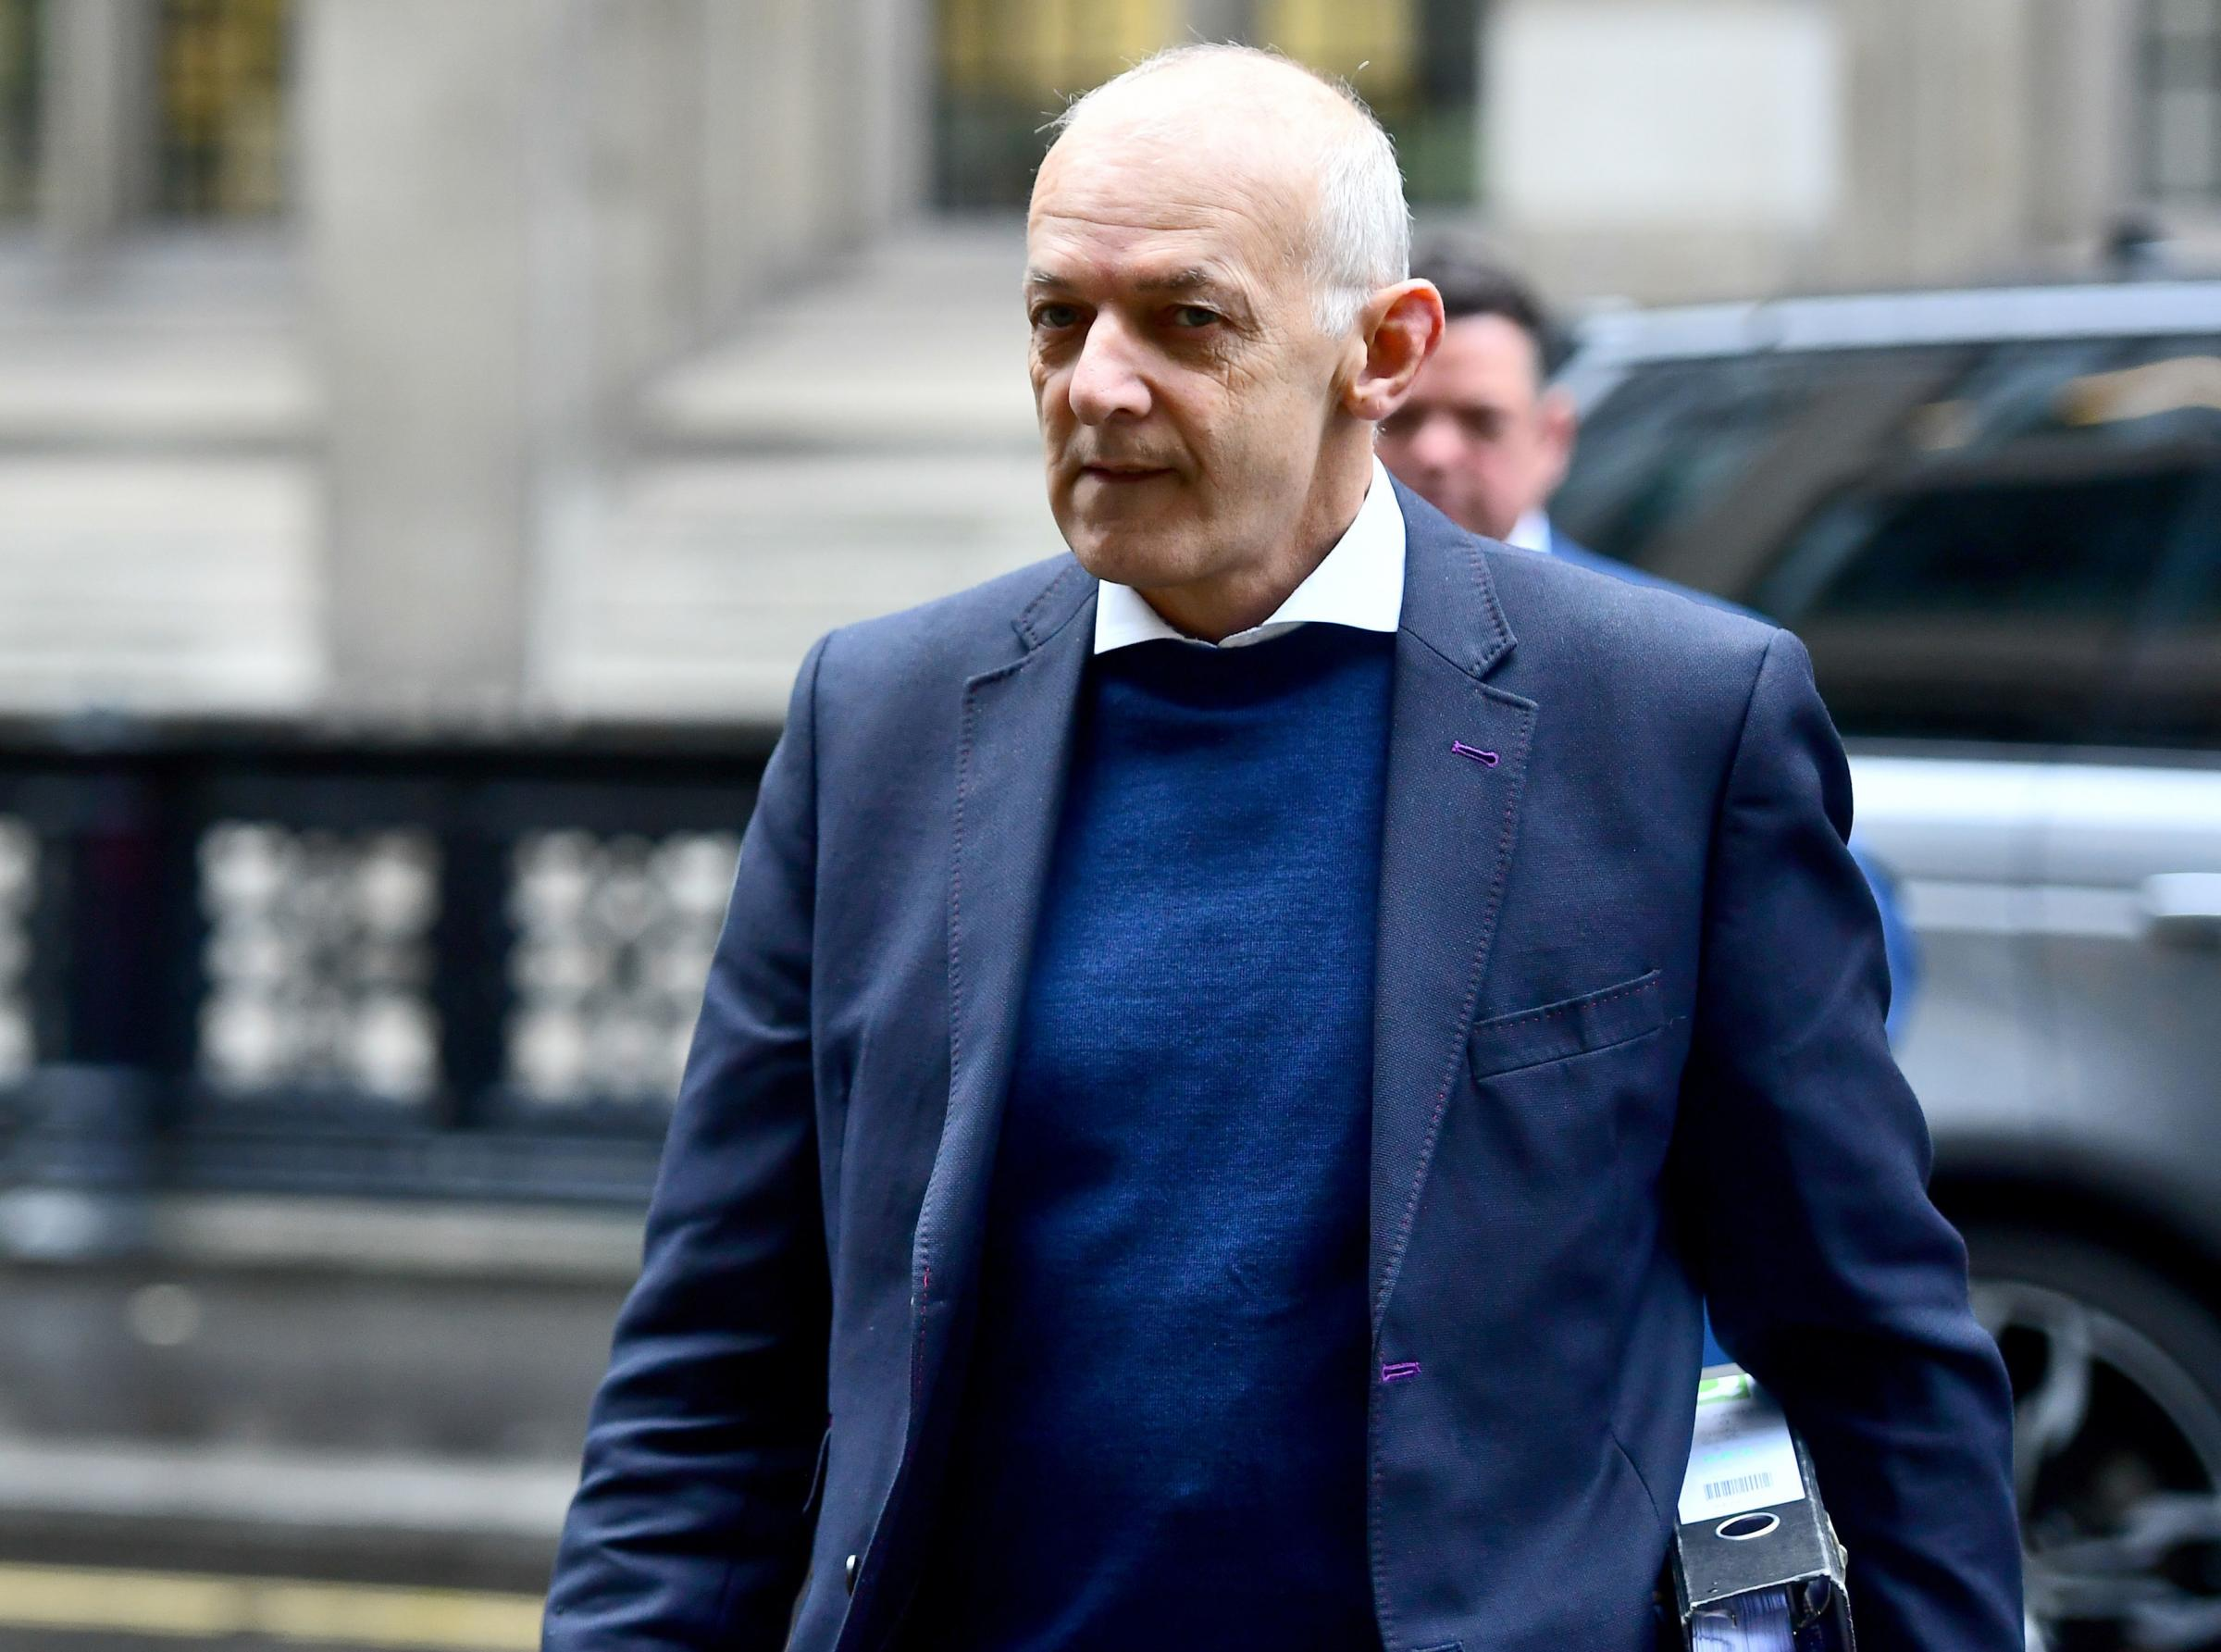 Andrew Tinkler arrives at the Rolls Building in London, where his former bosses at the Stobart Group are suing him in the High Court over allegations he conspired with others to harm the company's interests. PRESS ASSOCIATION Photo. Pi